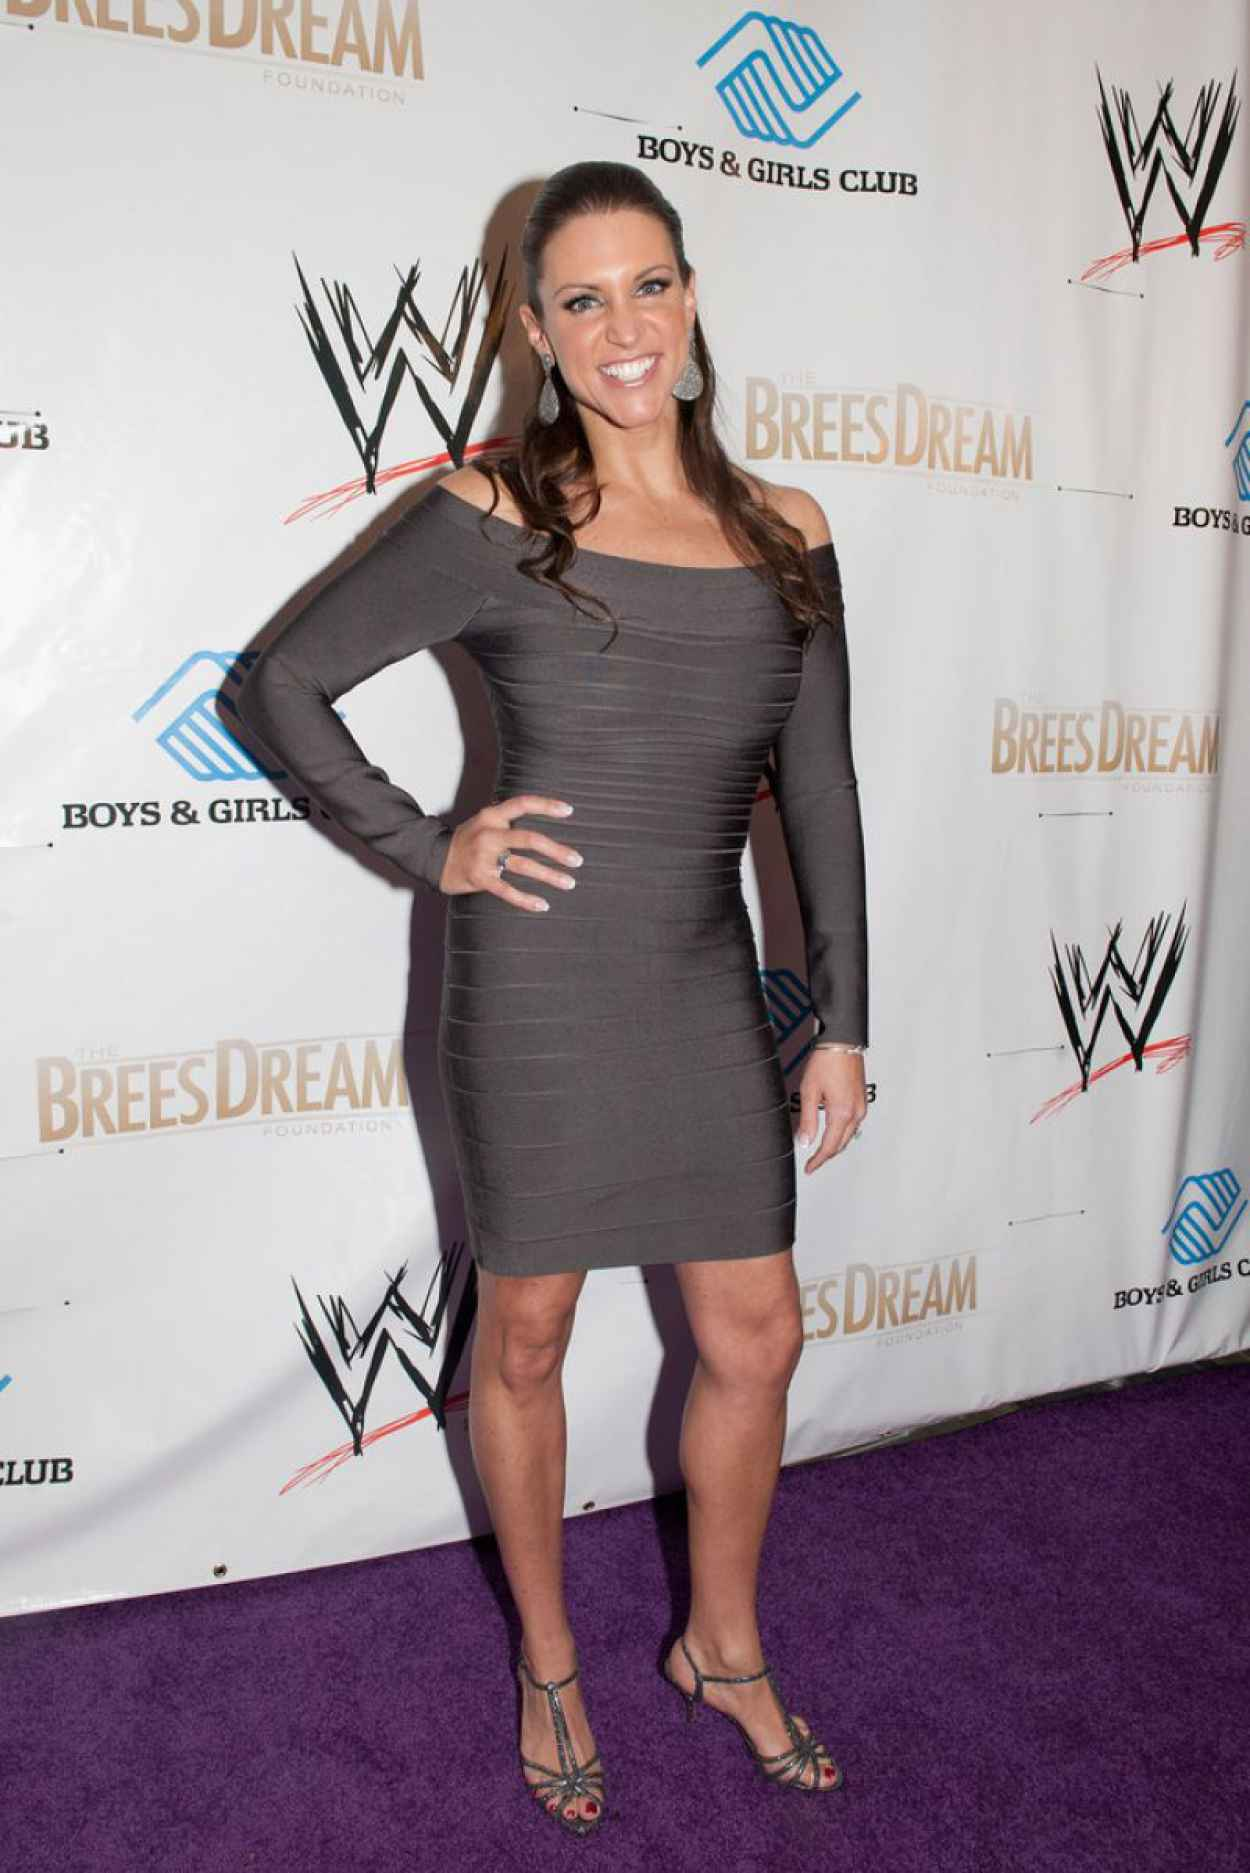 Stephanie McMahon Leggy in a Tight Dress - WWE Superstars for Kids Event - April 2015-1